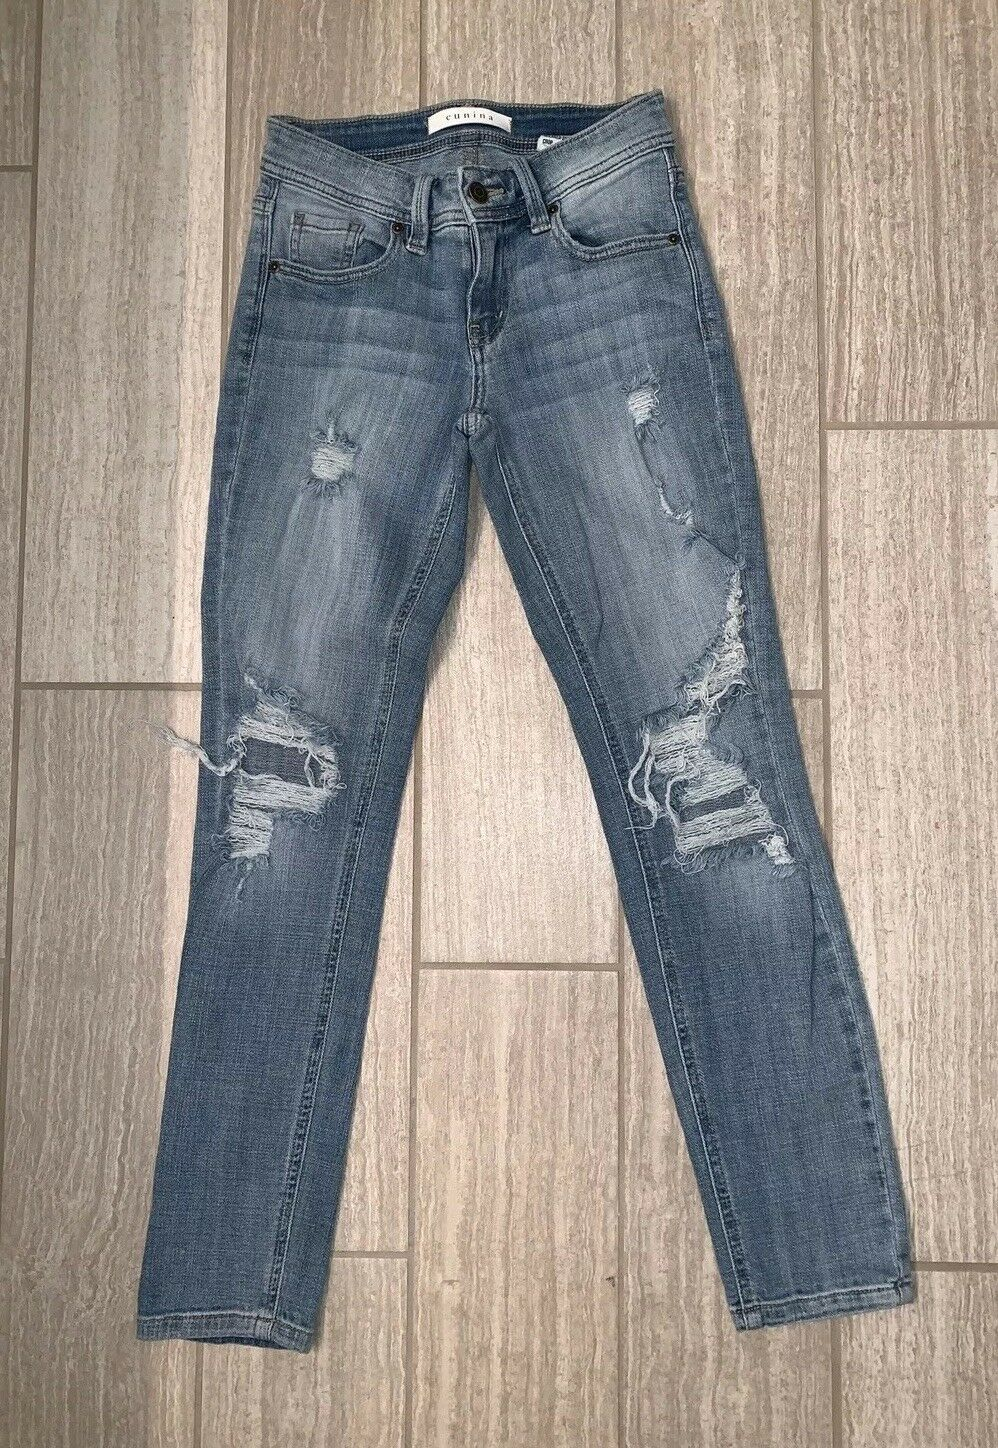 Eunina Mid Rise Destroyed Relaxed Skinny Fit Jeans - Sz 0